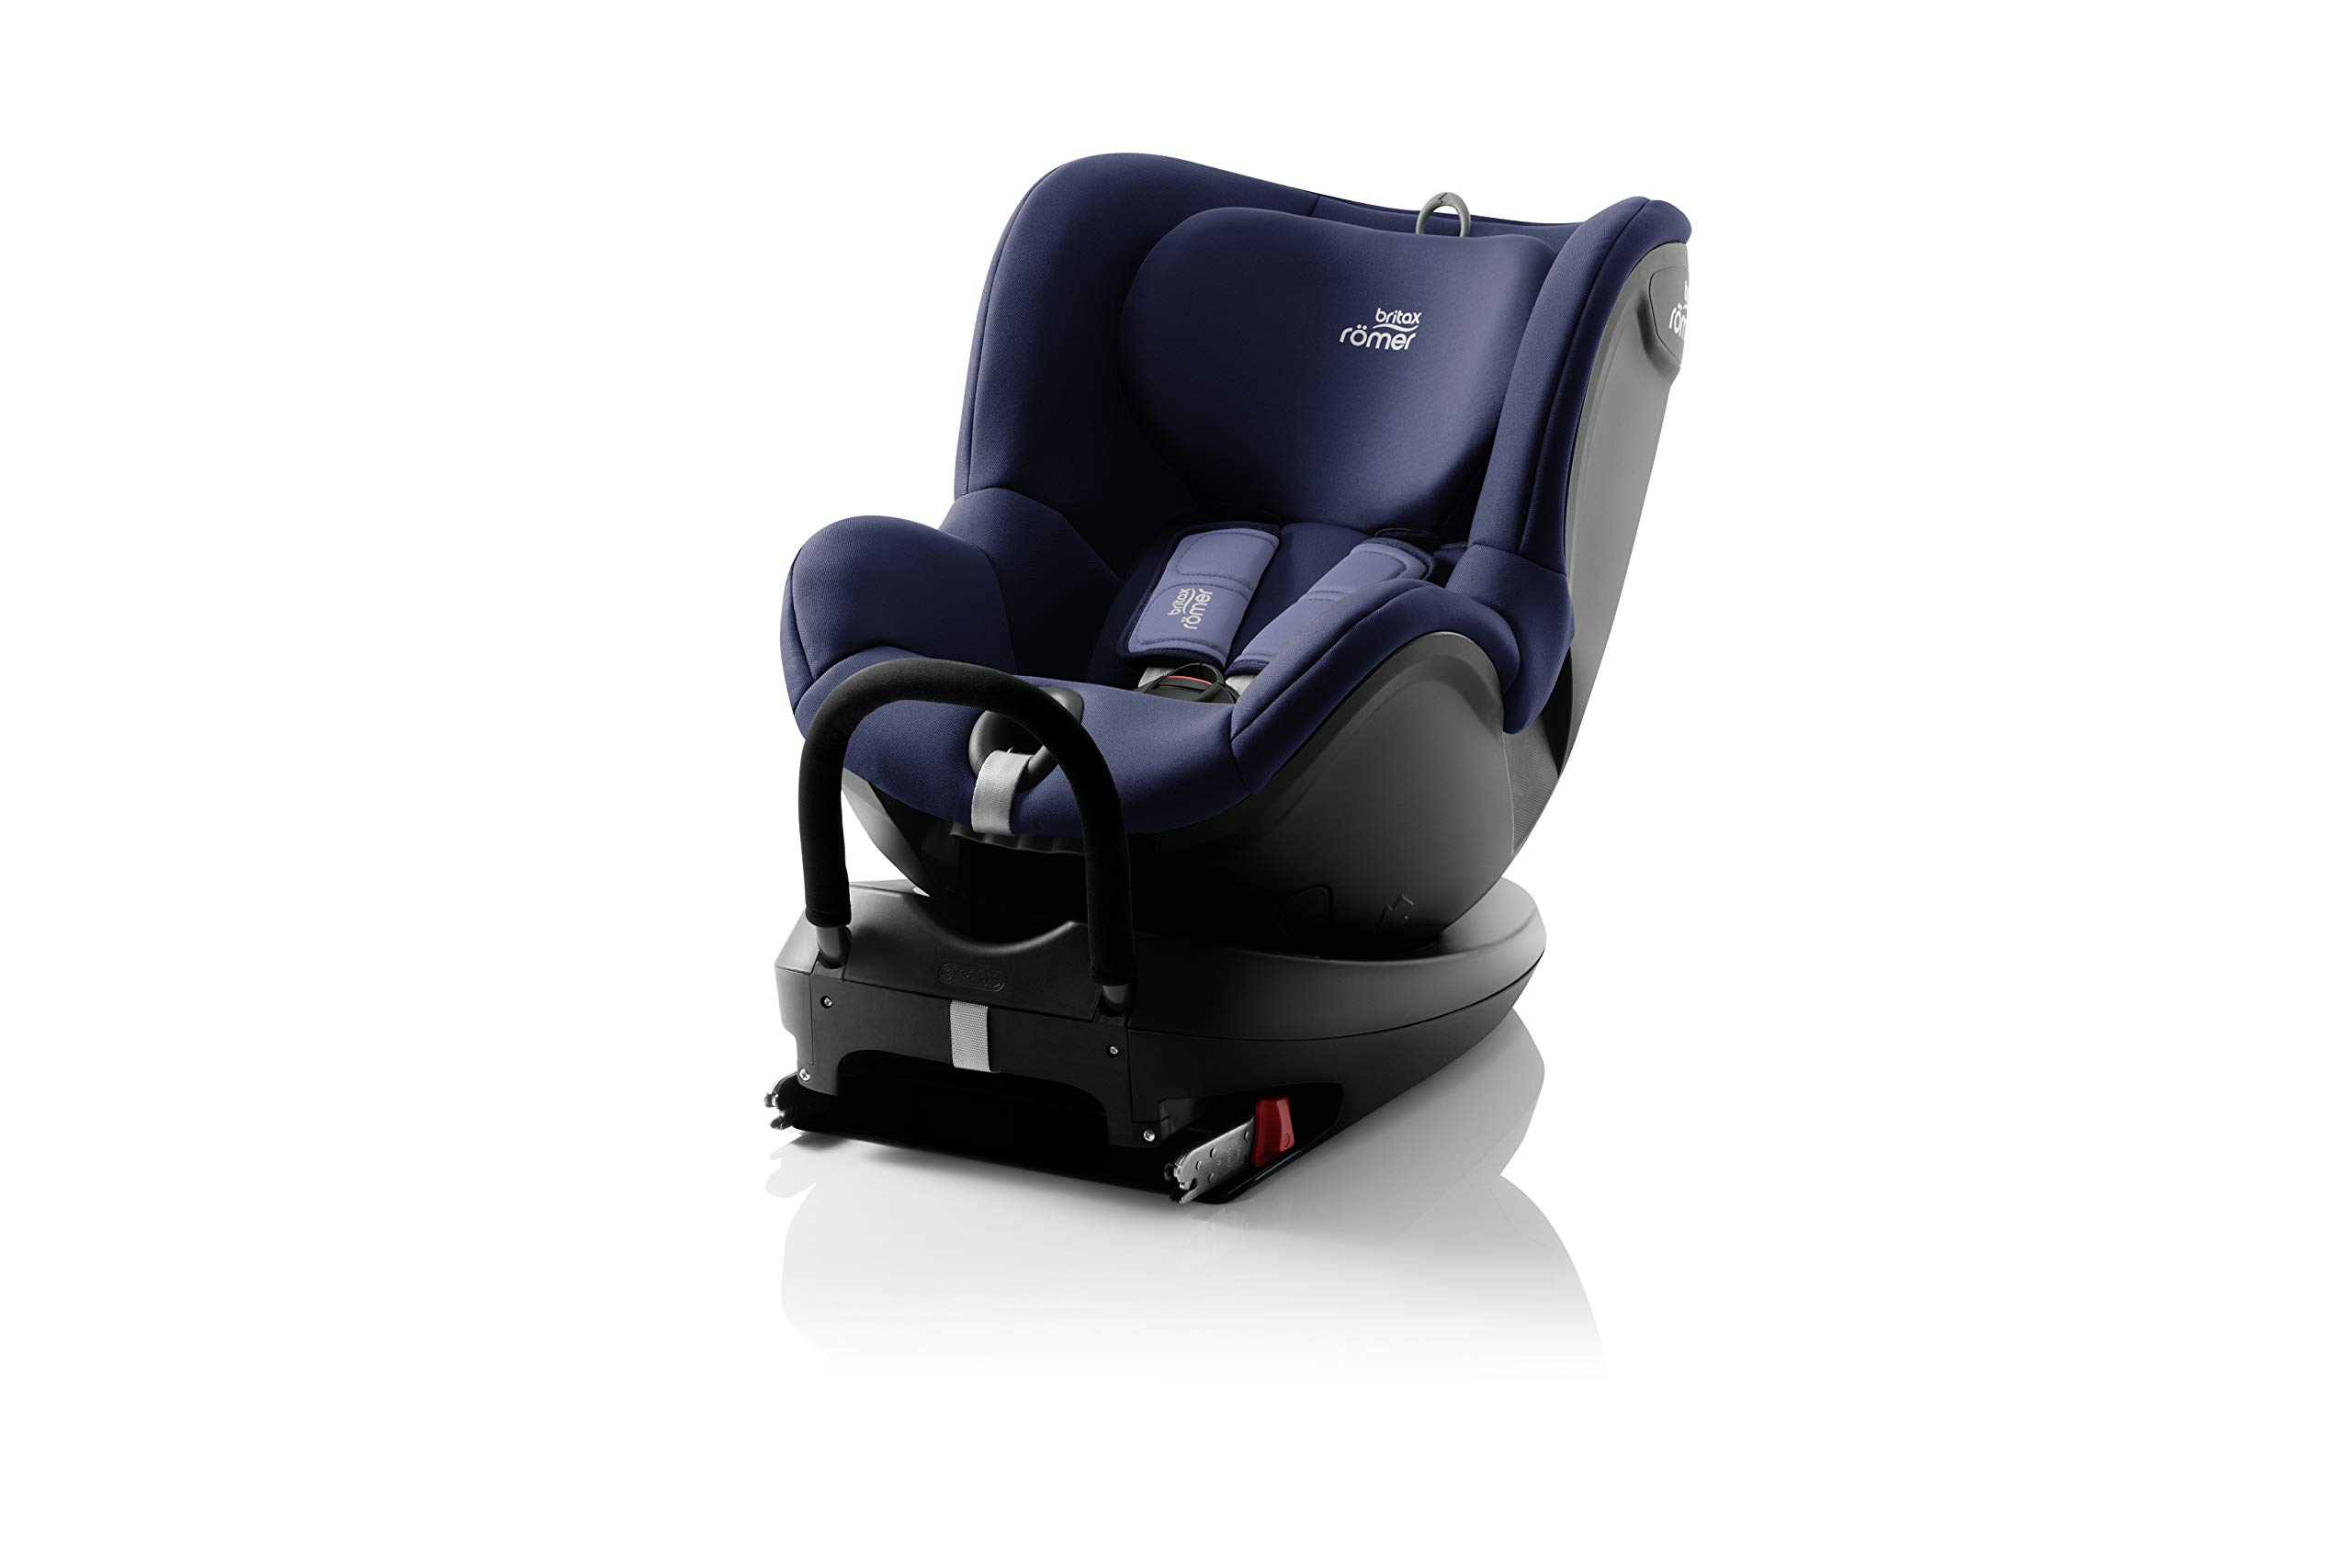 Britax Römer car seat birth DUALFIX 2 R car seat swivel group 0+/1, Moonlight Blue, 18 kg Britax Römer Intuitive 360 Degree rotation for rearward and forward facing usage Easy entry with 90 Degree rotation to the open door for easy placement of the child Extended rearward facing travel with more leg space thanks to shorter rebound bar 1